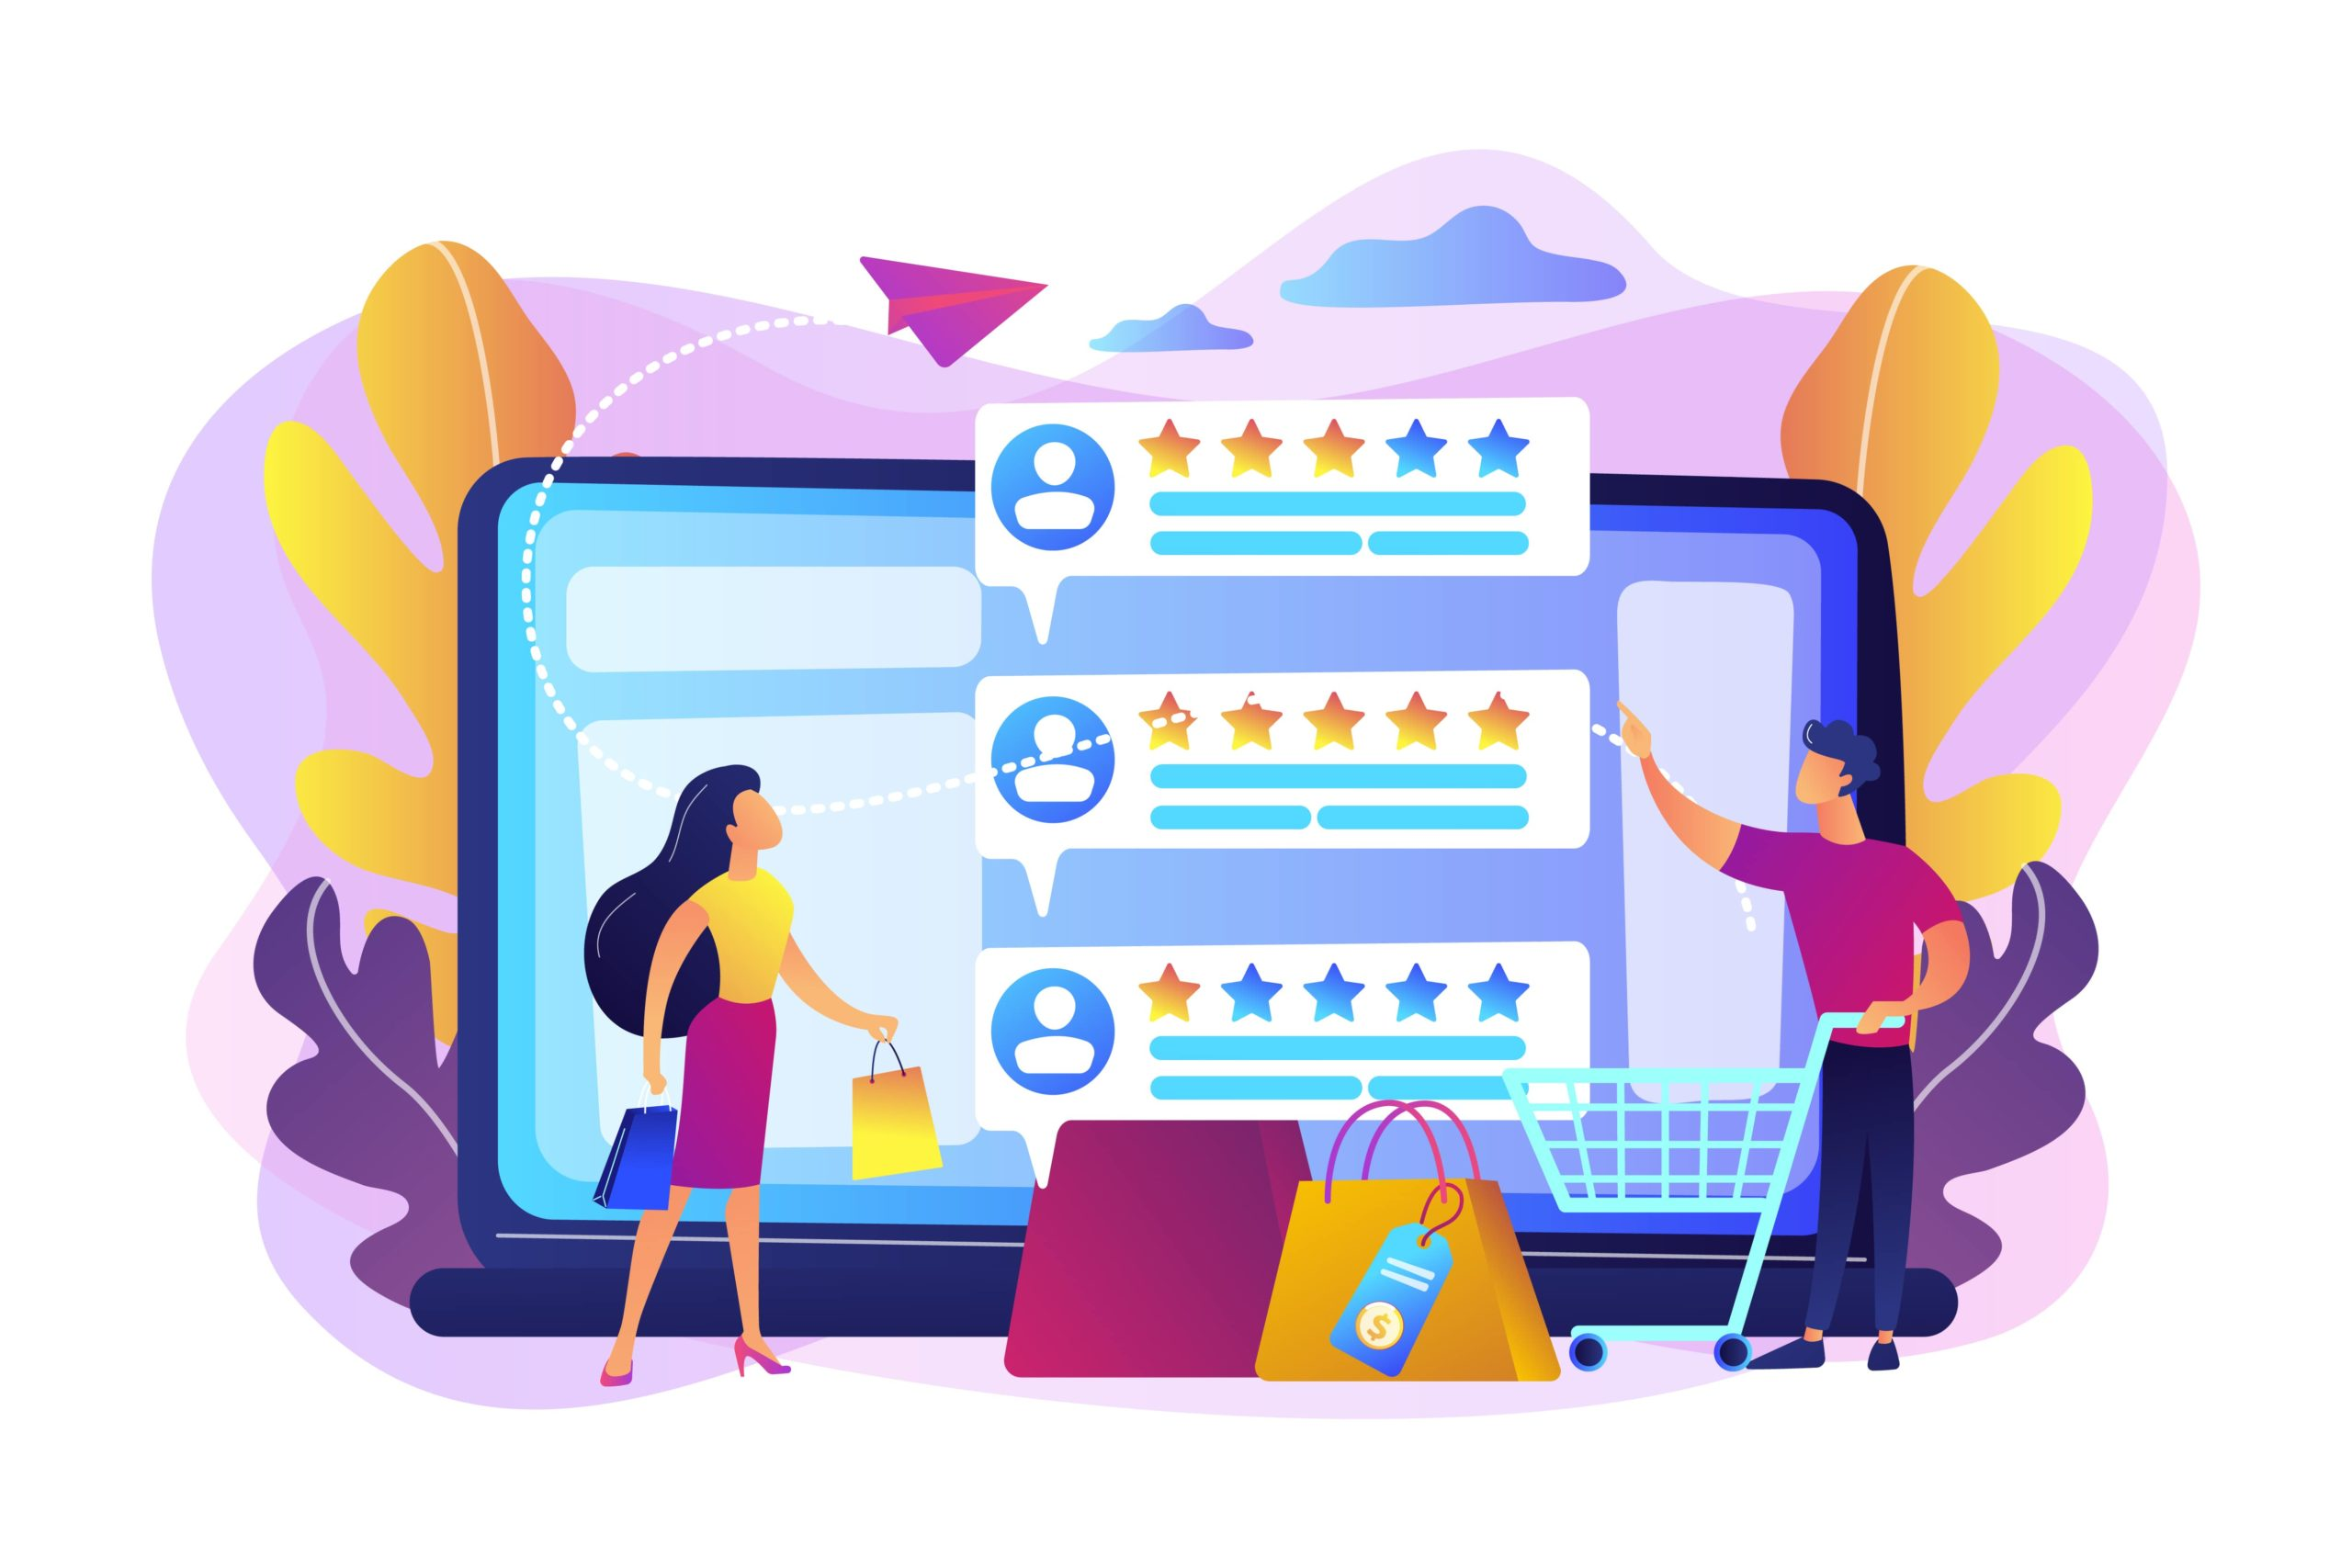 How to Add Review Stars to Collection Templates